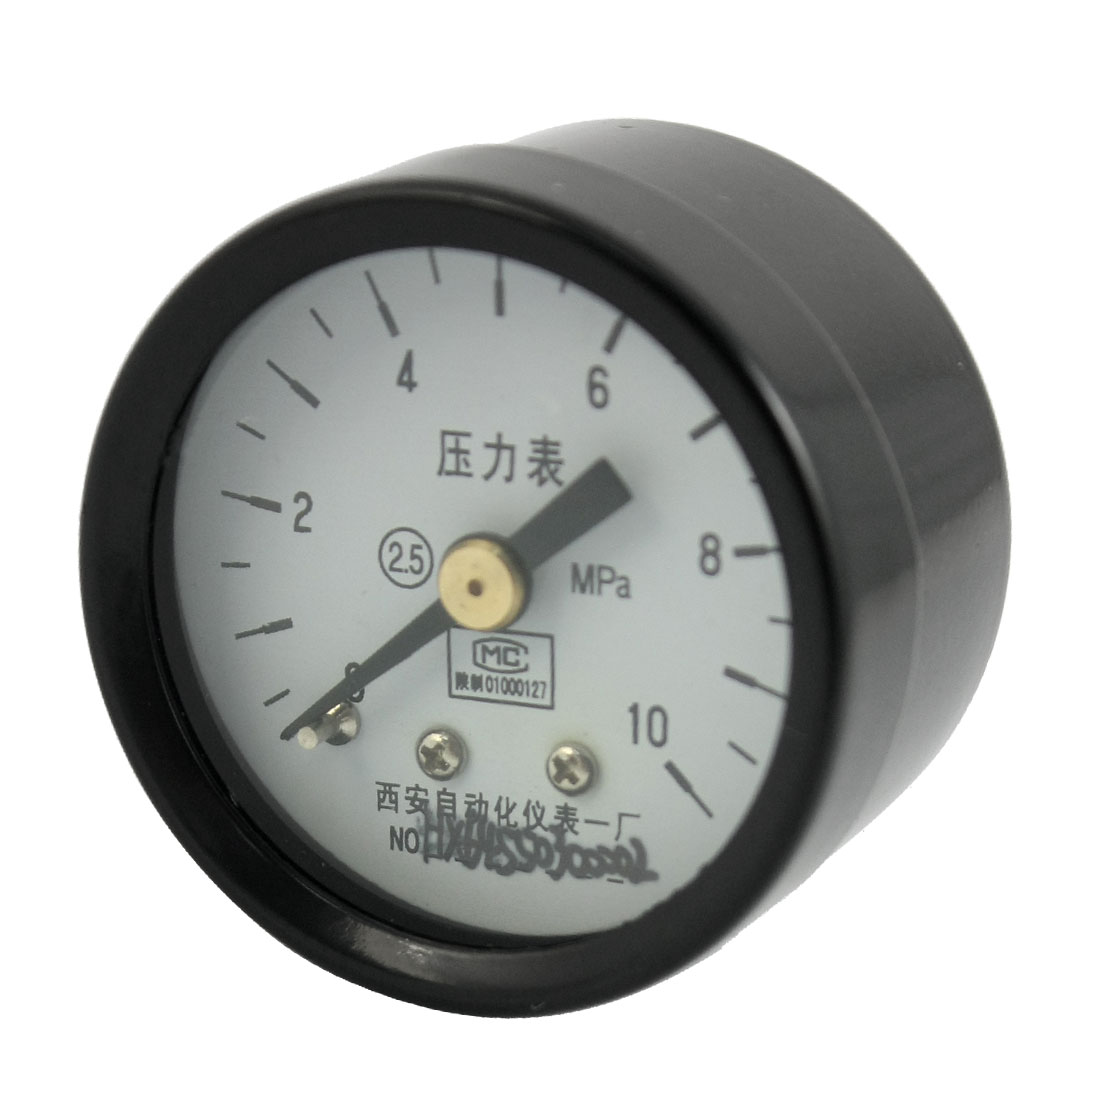 Black Case 1/8PT Threaded 0-10Mpa Arabic Number Display Pneumatic Air Pressure Gauge